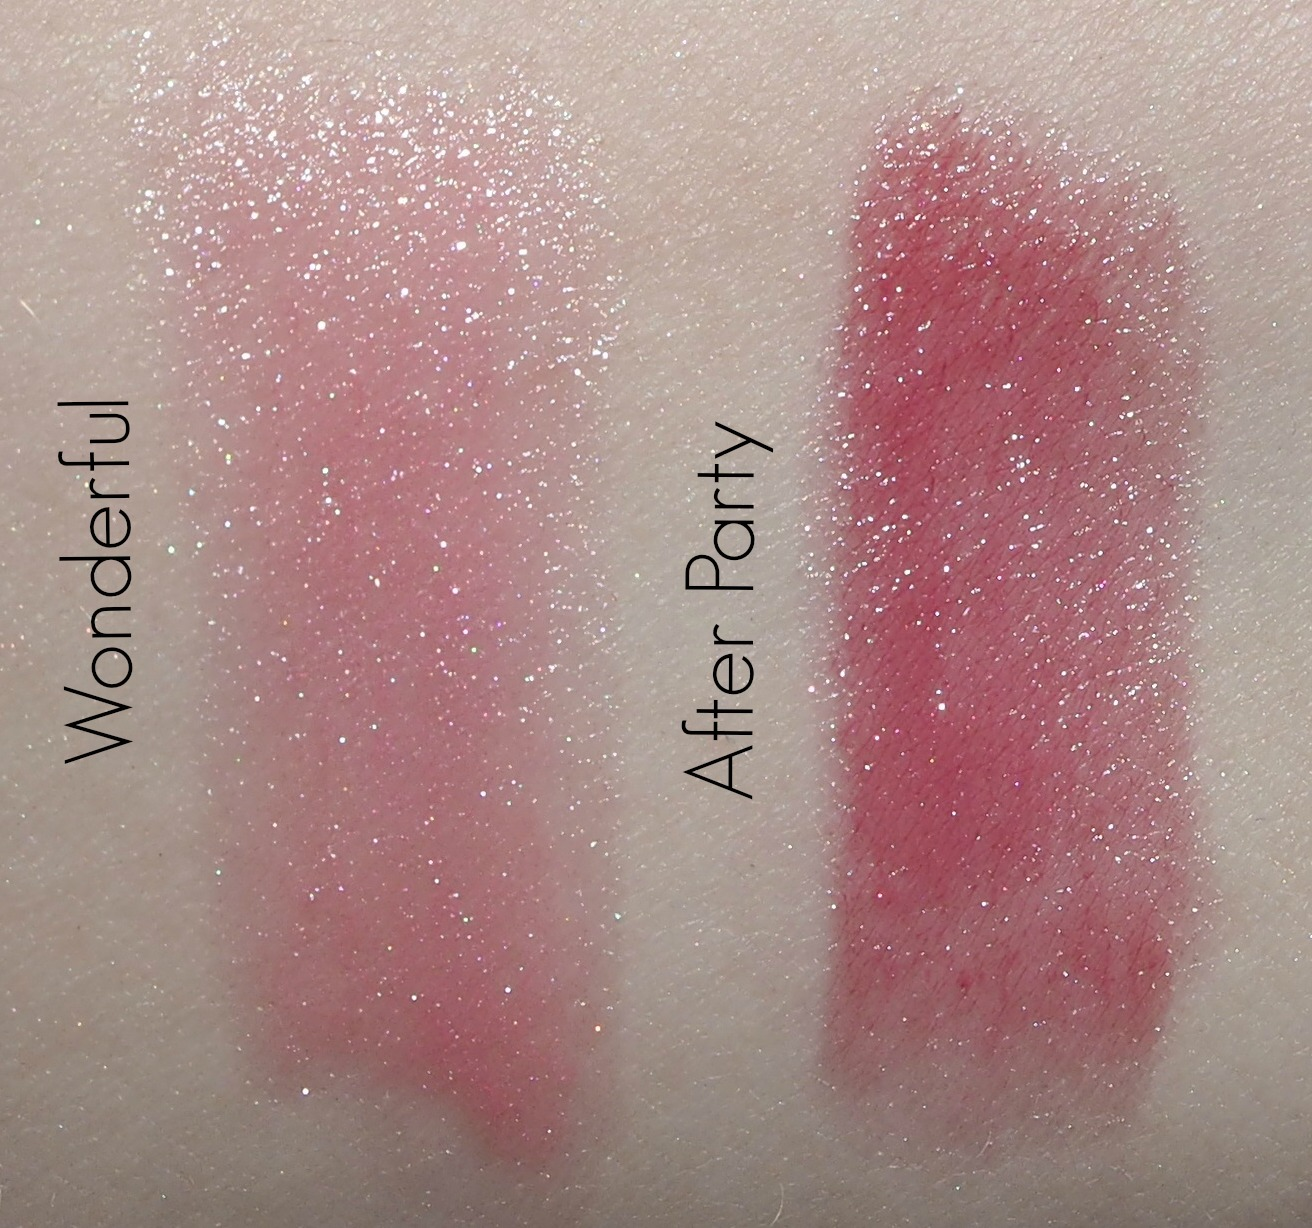 dior addict lipstickwonderful and after party expat